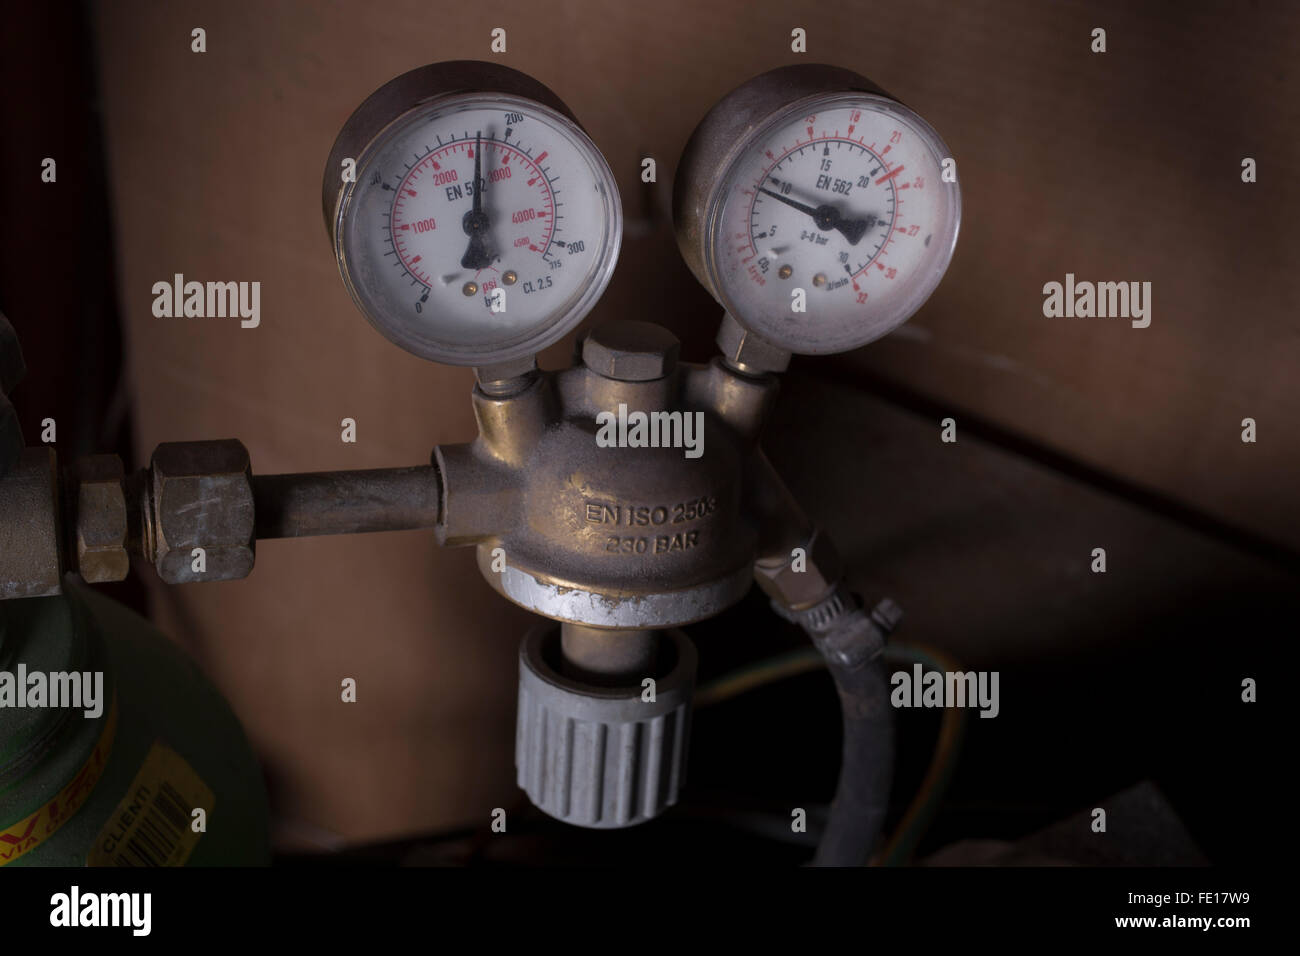 Two manometers or gauge - Stock Image